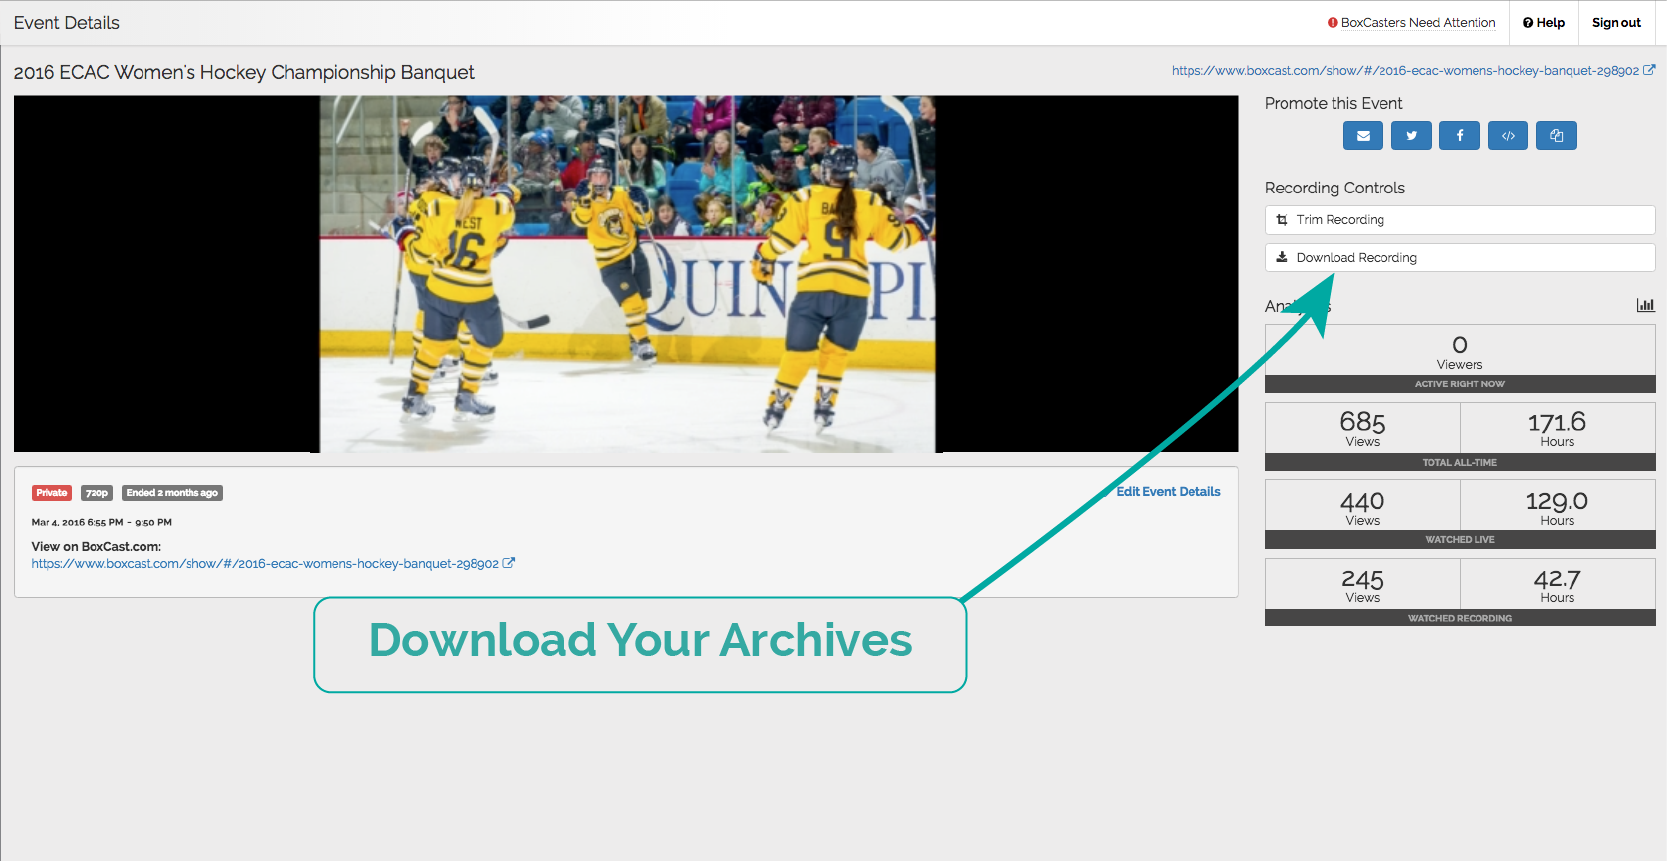 Download your archive straight from your dashboard